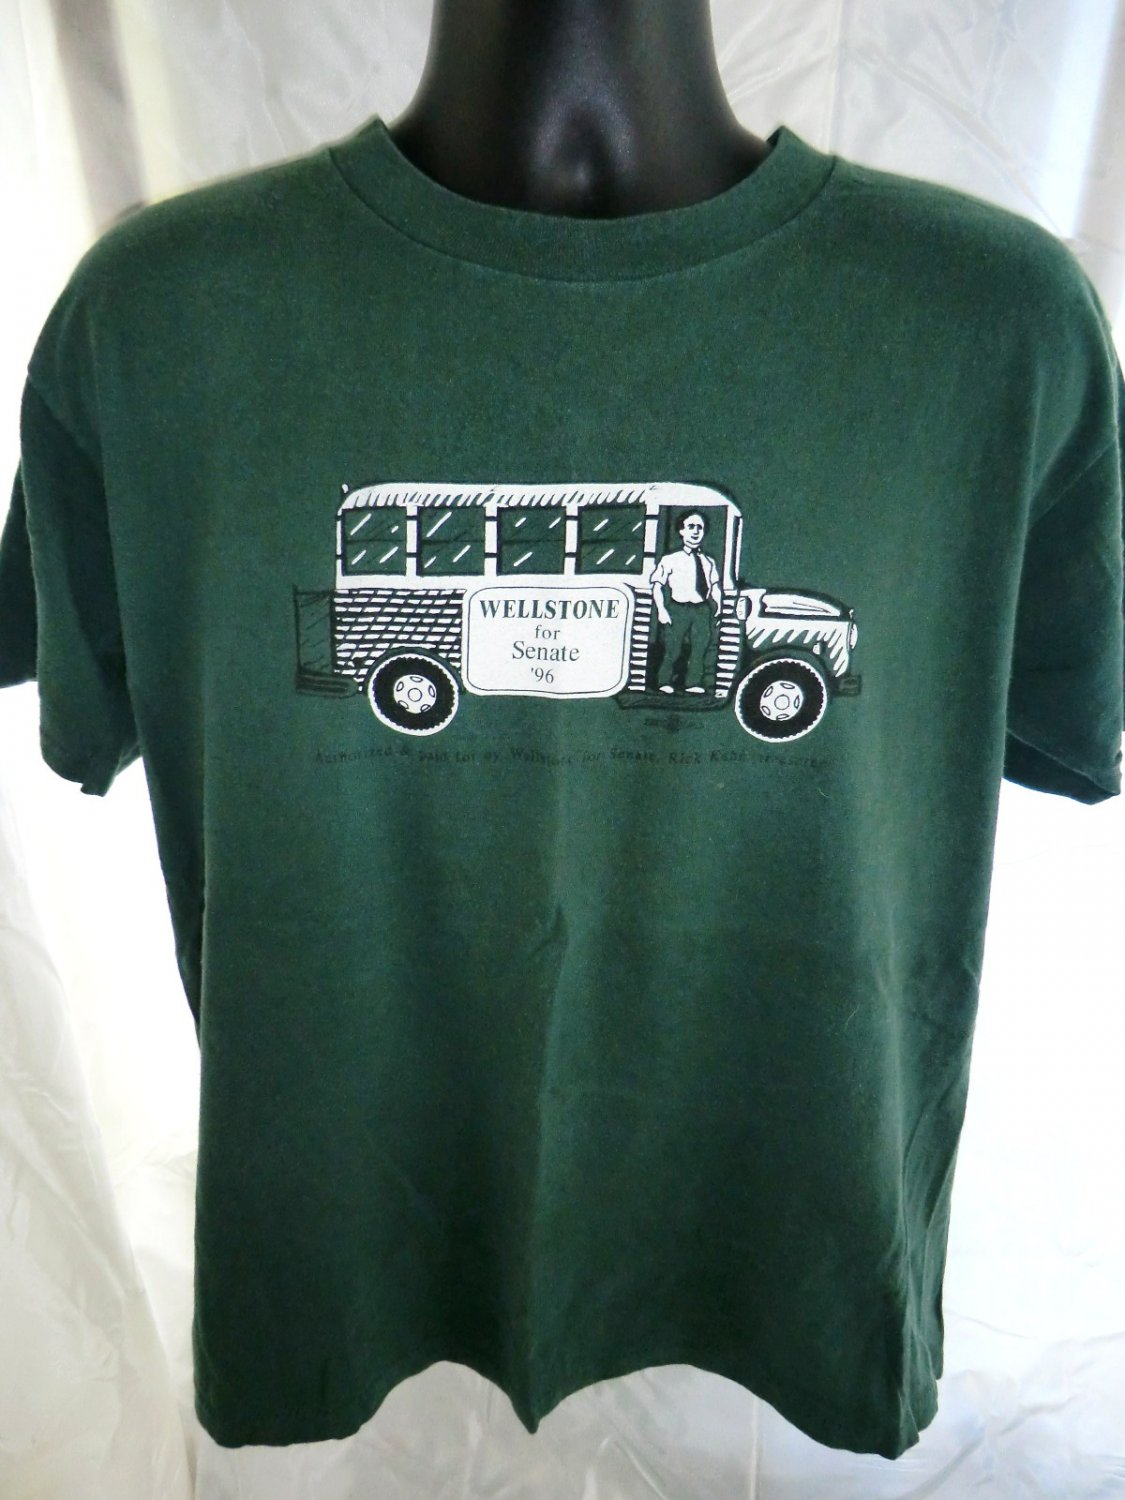 SOLD! Vintage 1996 Paul Wellstone Campaign Large T-Shirt